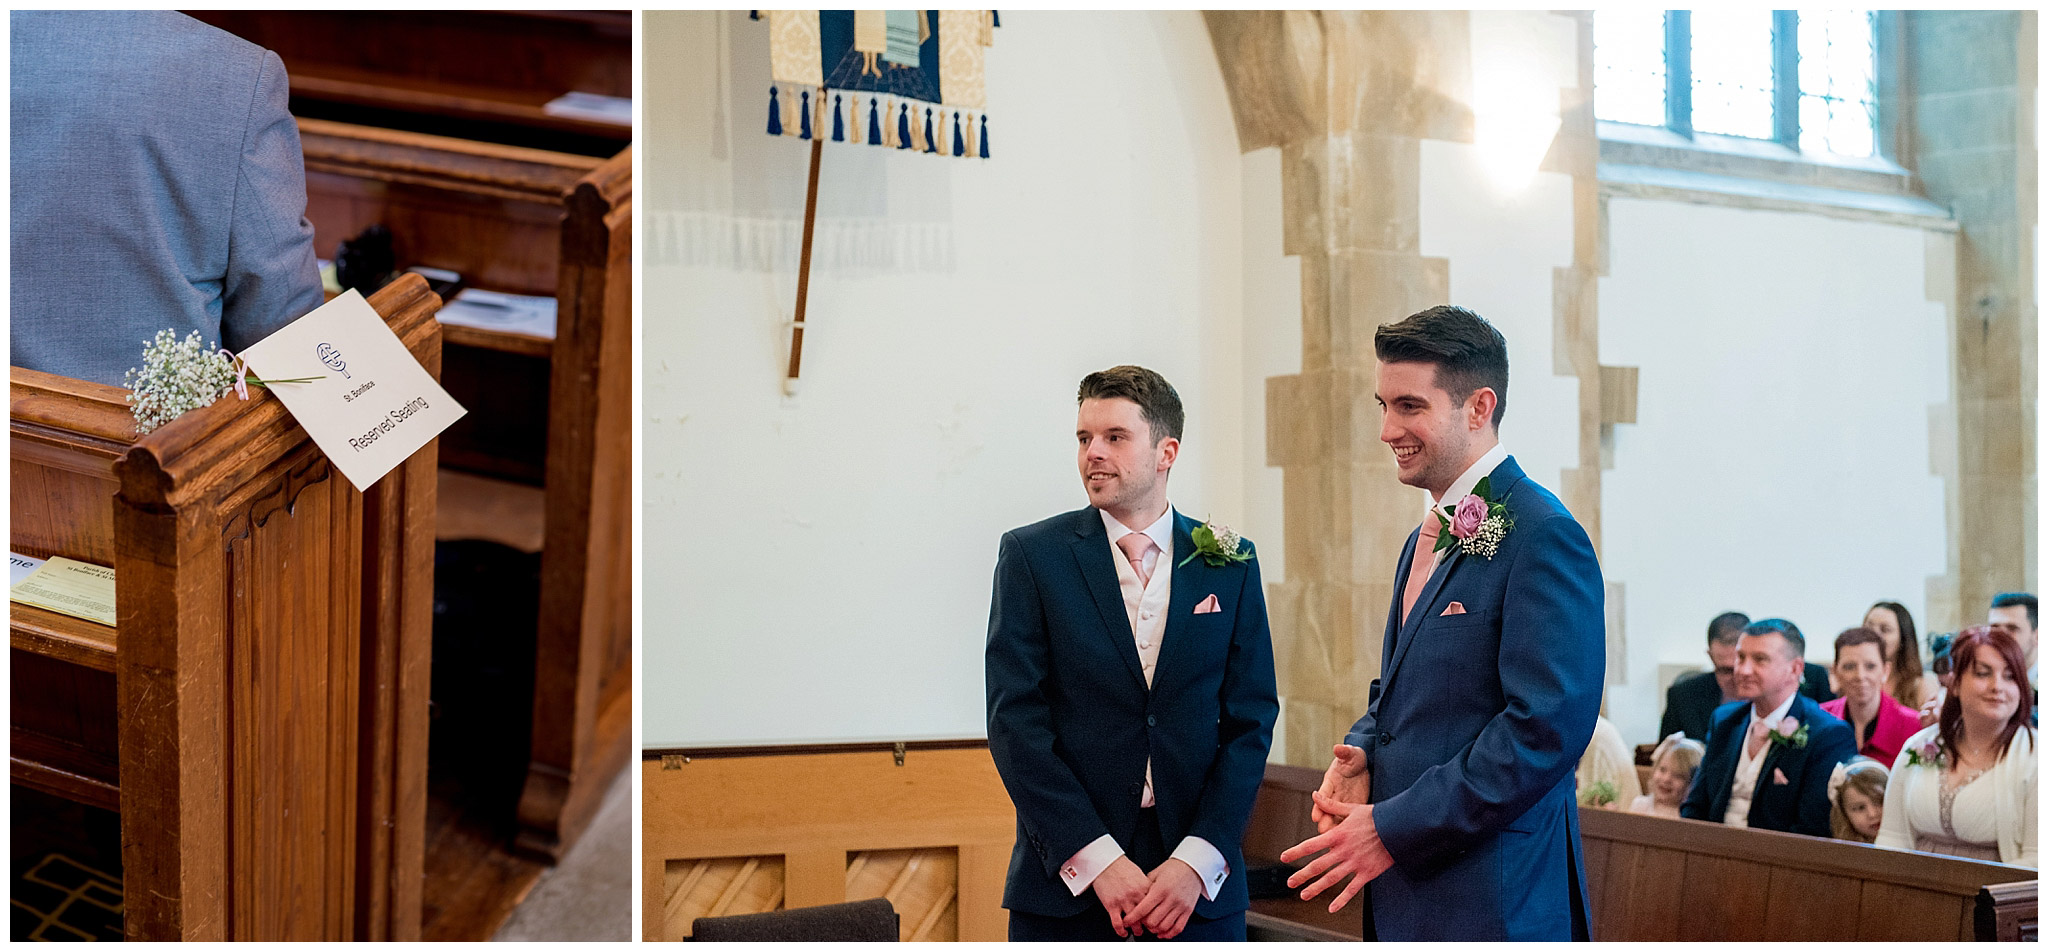 groom waiting at church alter looking nervous